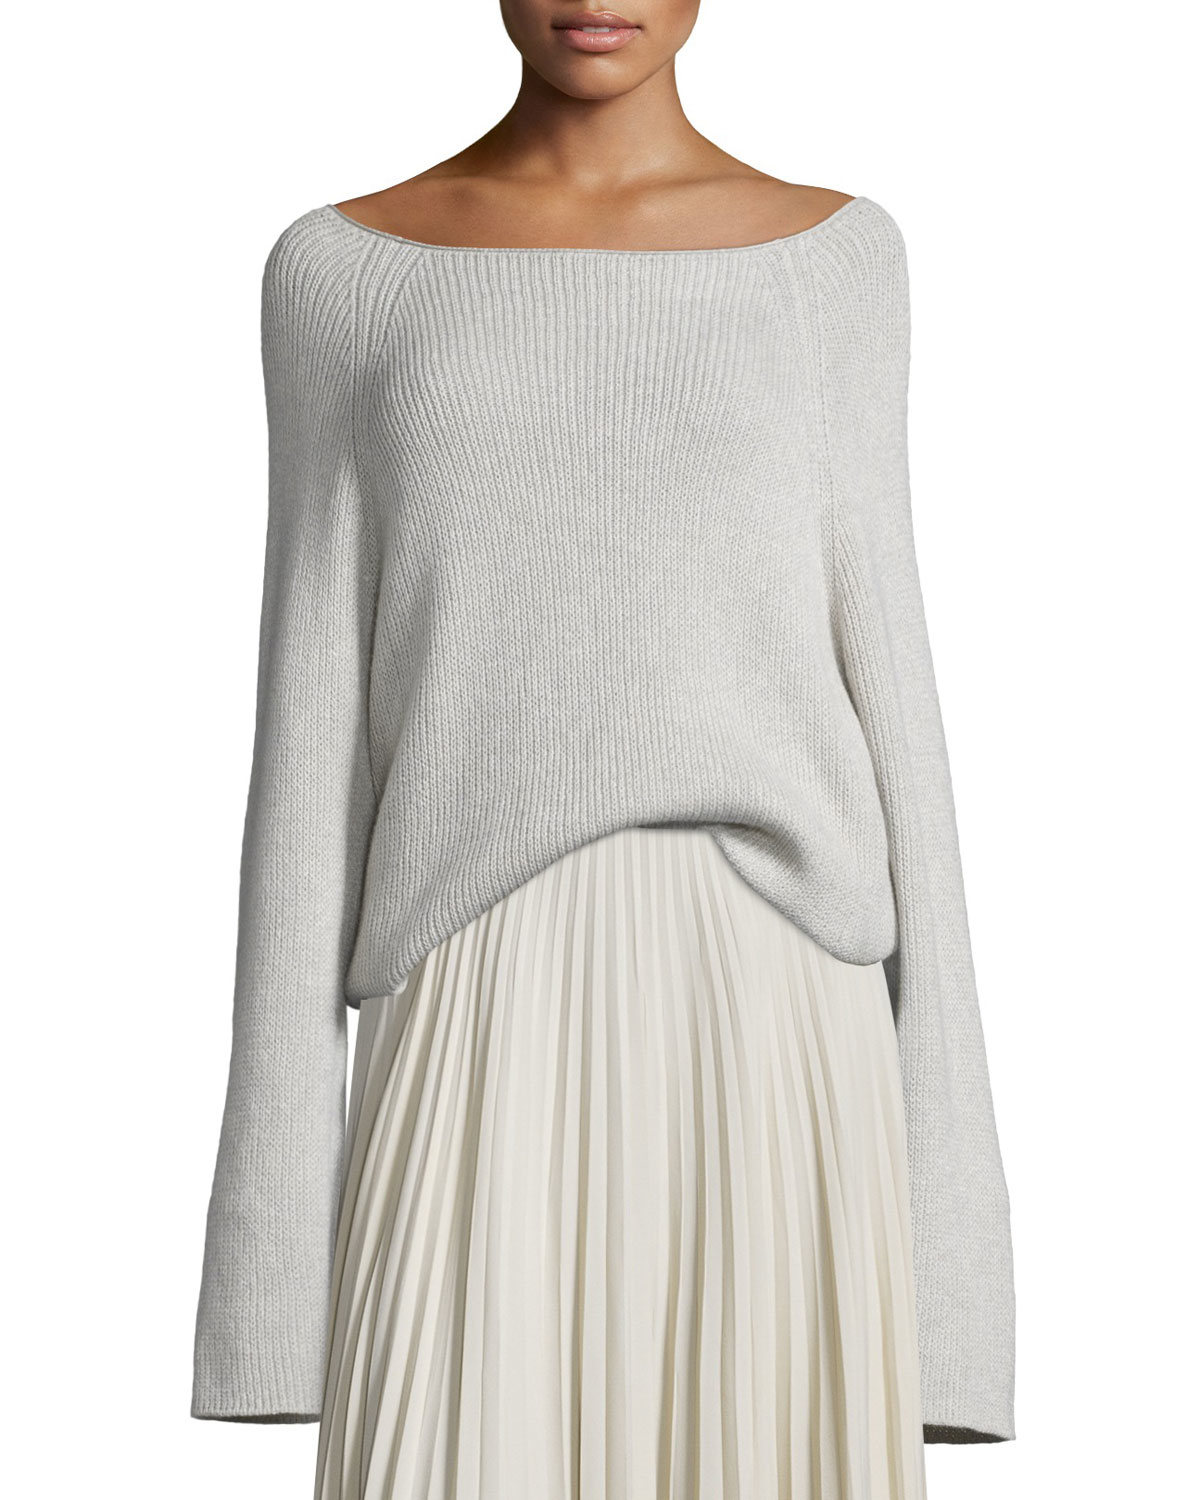 Helmut lang Cashmere-blend Ribbed Pullover Sweater in Natural | Lyst